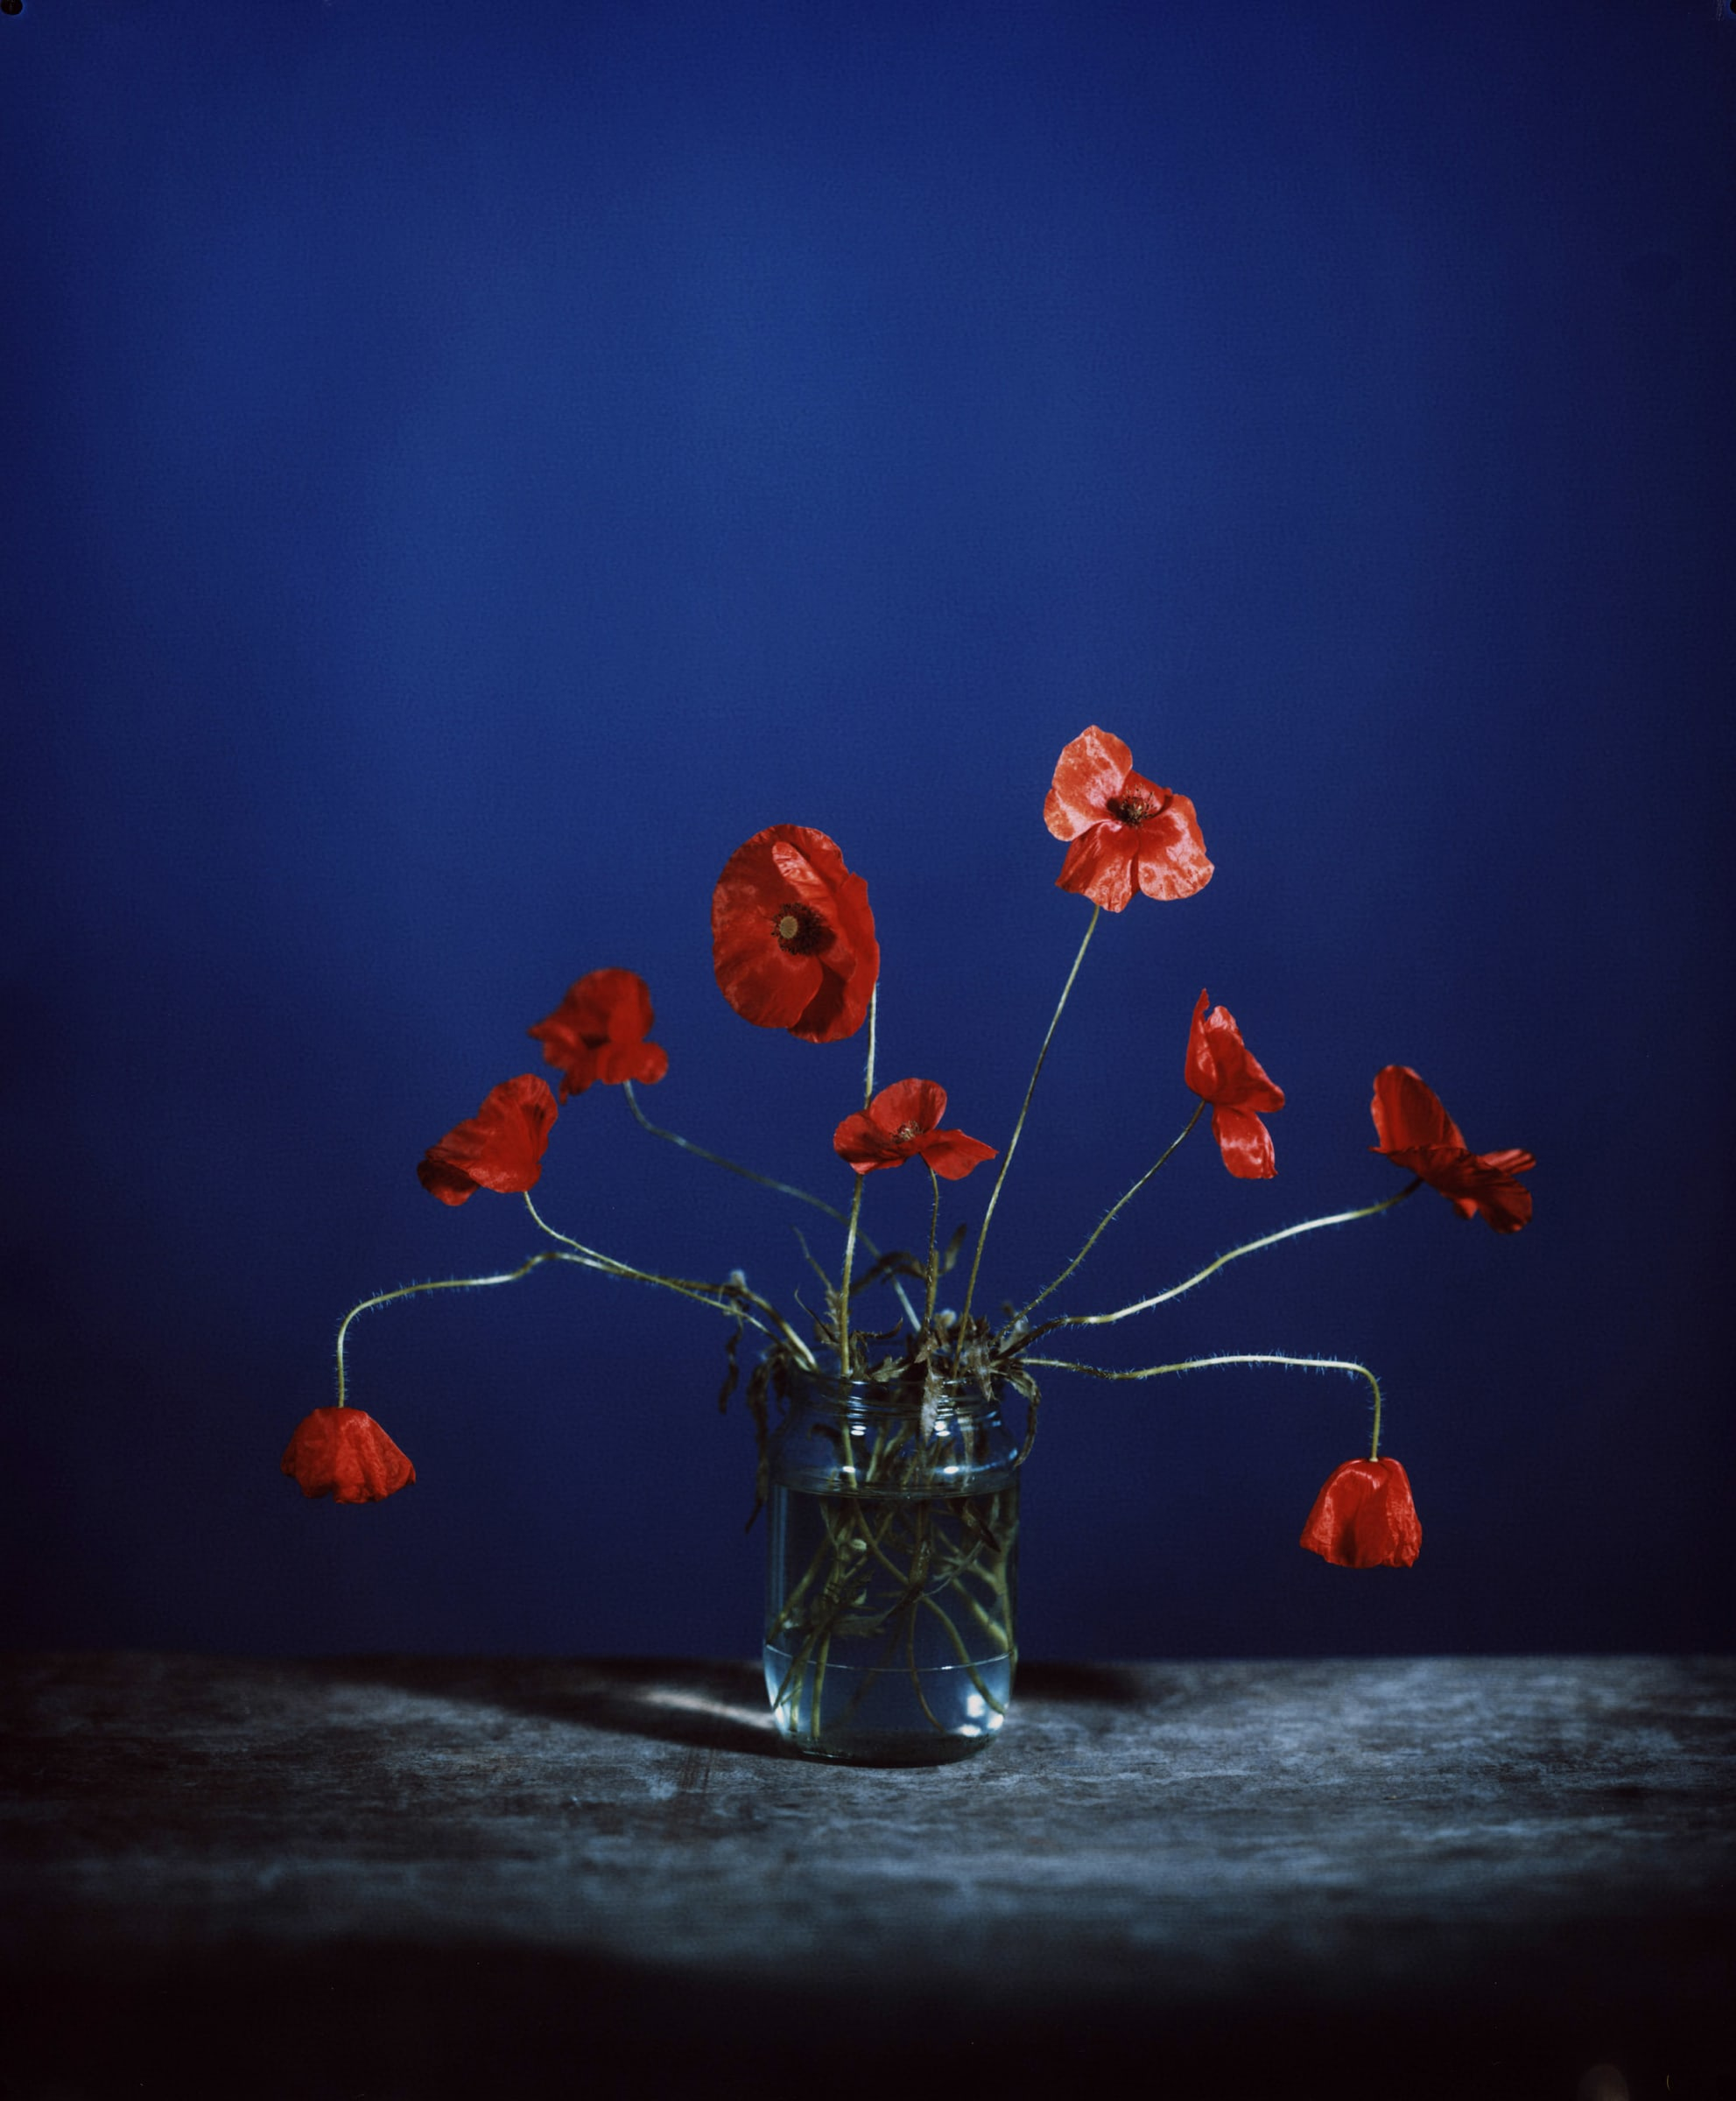 """<span class=""""link fancybox-details-link""""><a href=""""/exhibitions/29/works/artworks922/"""">View Detail Page</a></span><div class=""""artist""""><strong>Brendan Barry</strong></div><div class=""""title""""><em>Common Poppy</em>, 2020</div><div class=""""medium"""">Unique Chromogenic photograph made using a Camera Obscura<br>Framed in a handmade bright-red sprayed box frame in museum glass</div><div class=""""dimensions"""">61 x 50.8 cm<br>24 x 20 in</div>"""